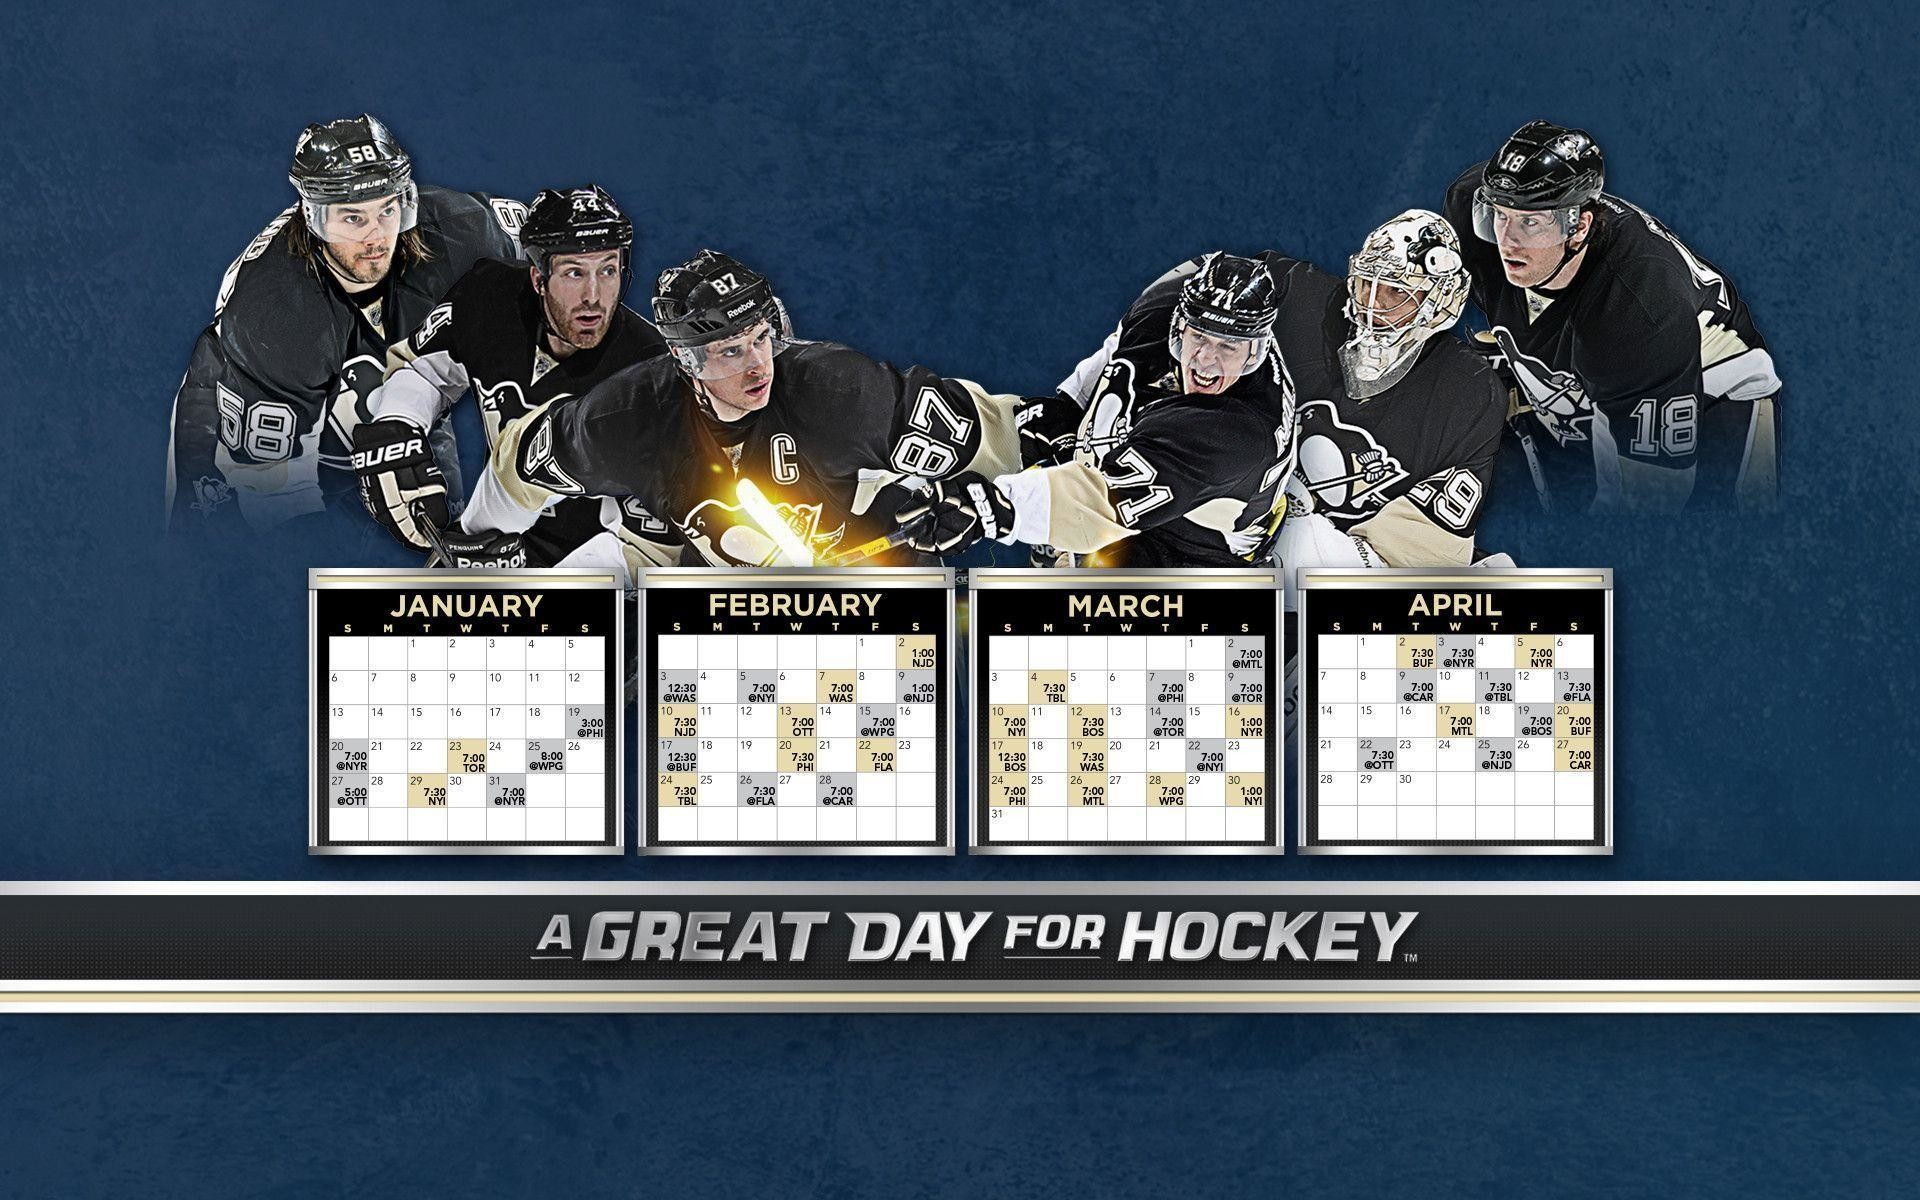 1920x1200 Pittsburgh Penguins wallpapers | Pittsburgh Penguins background .